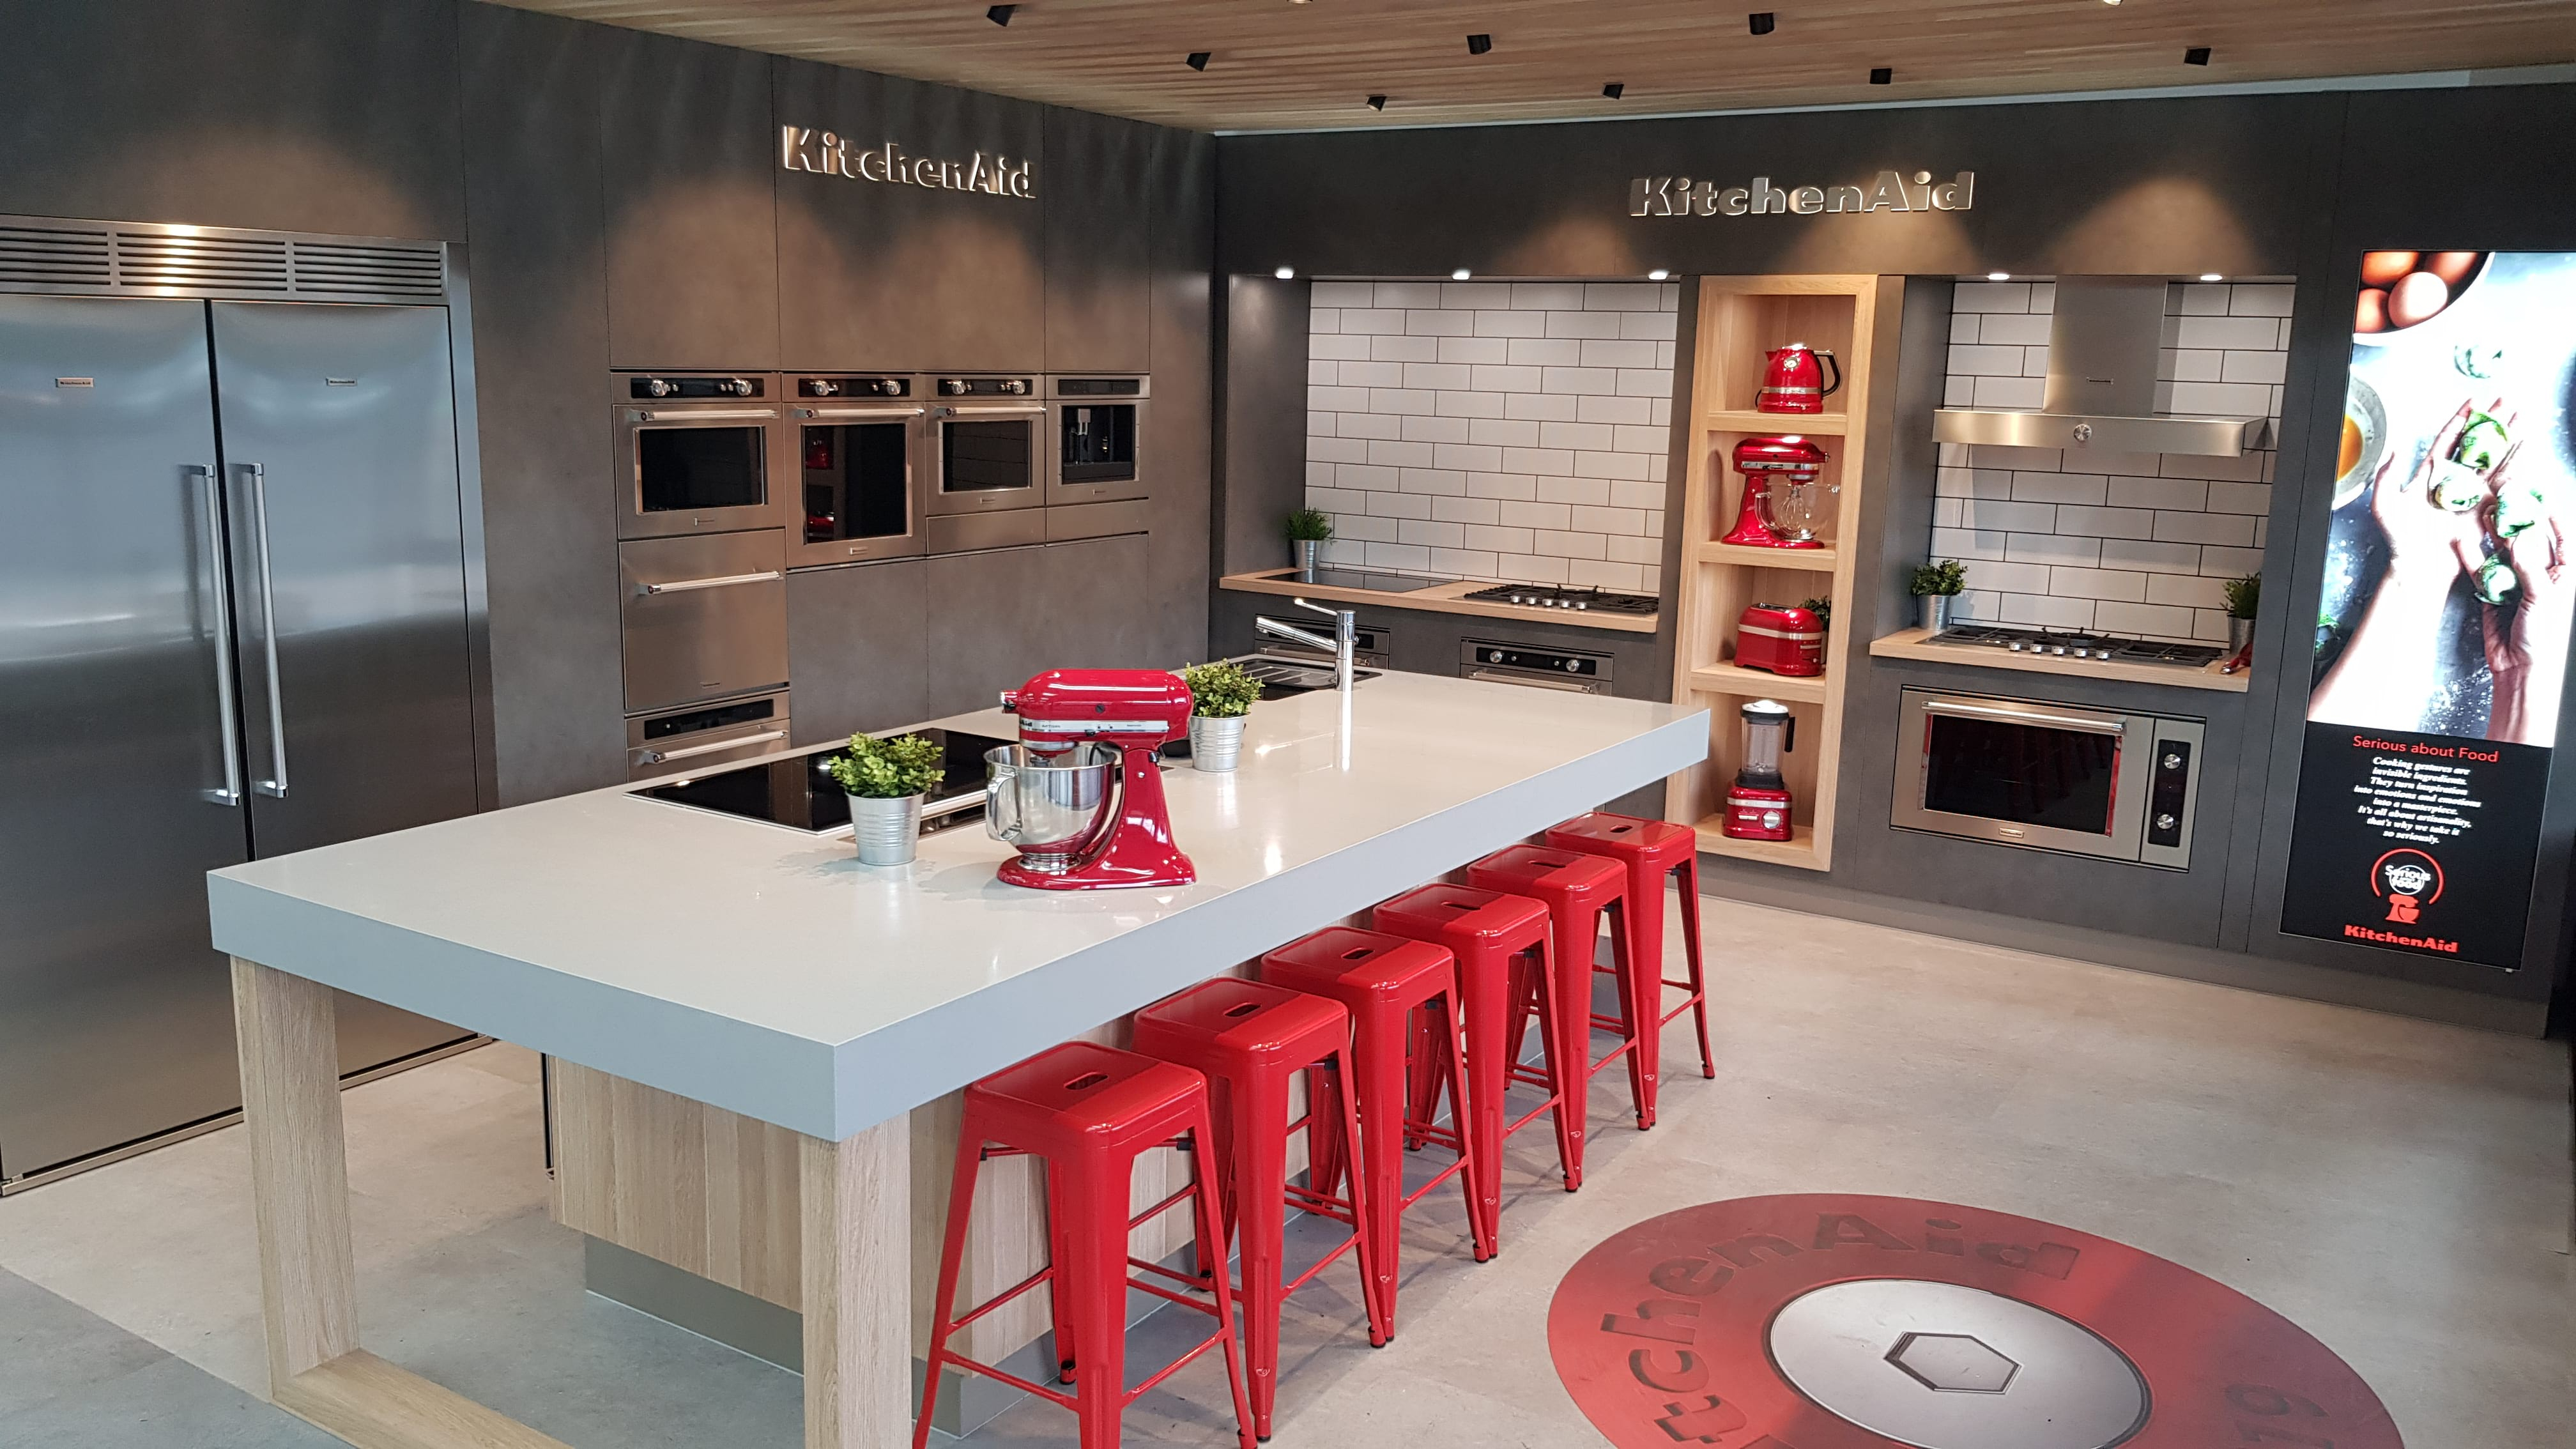 KitchenAid Experience Store - Camberwell Electrics Melbourne